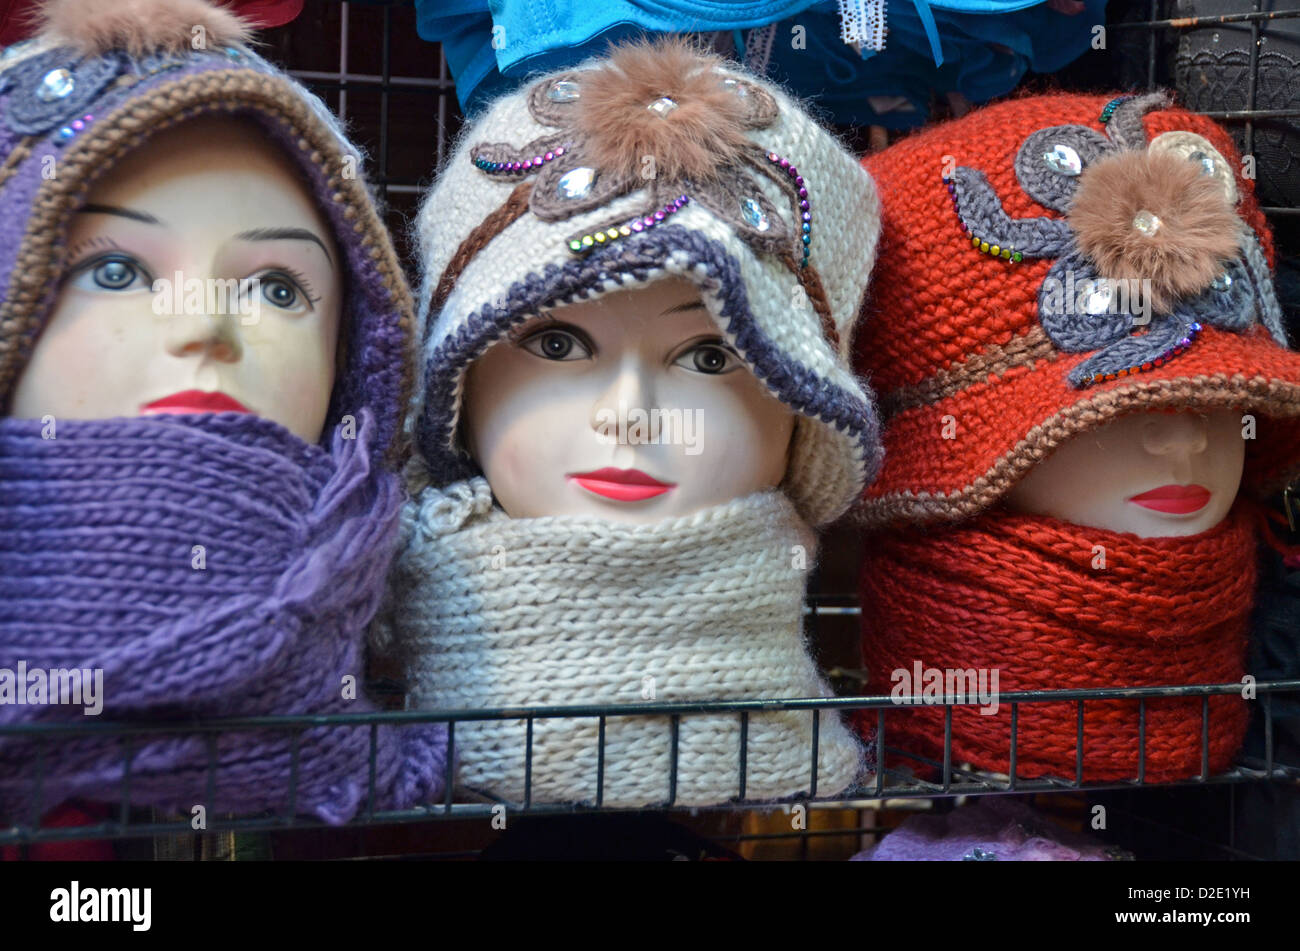 Hijabs and hats for sale in the souk, Morocco - Stock Image